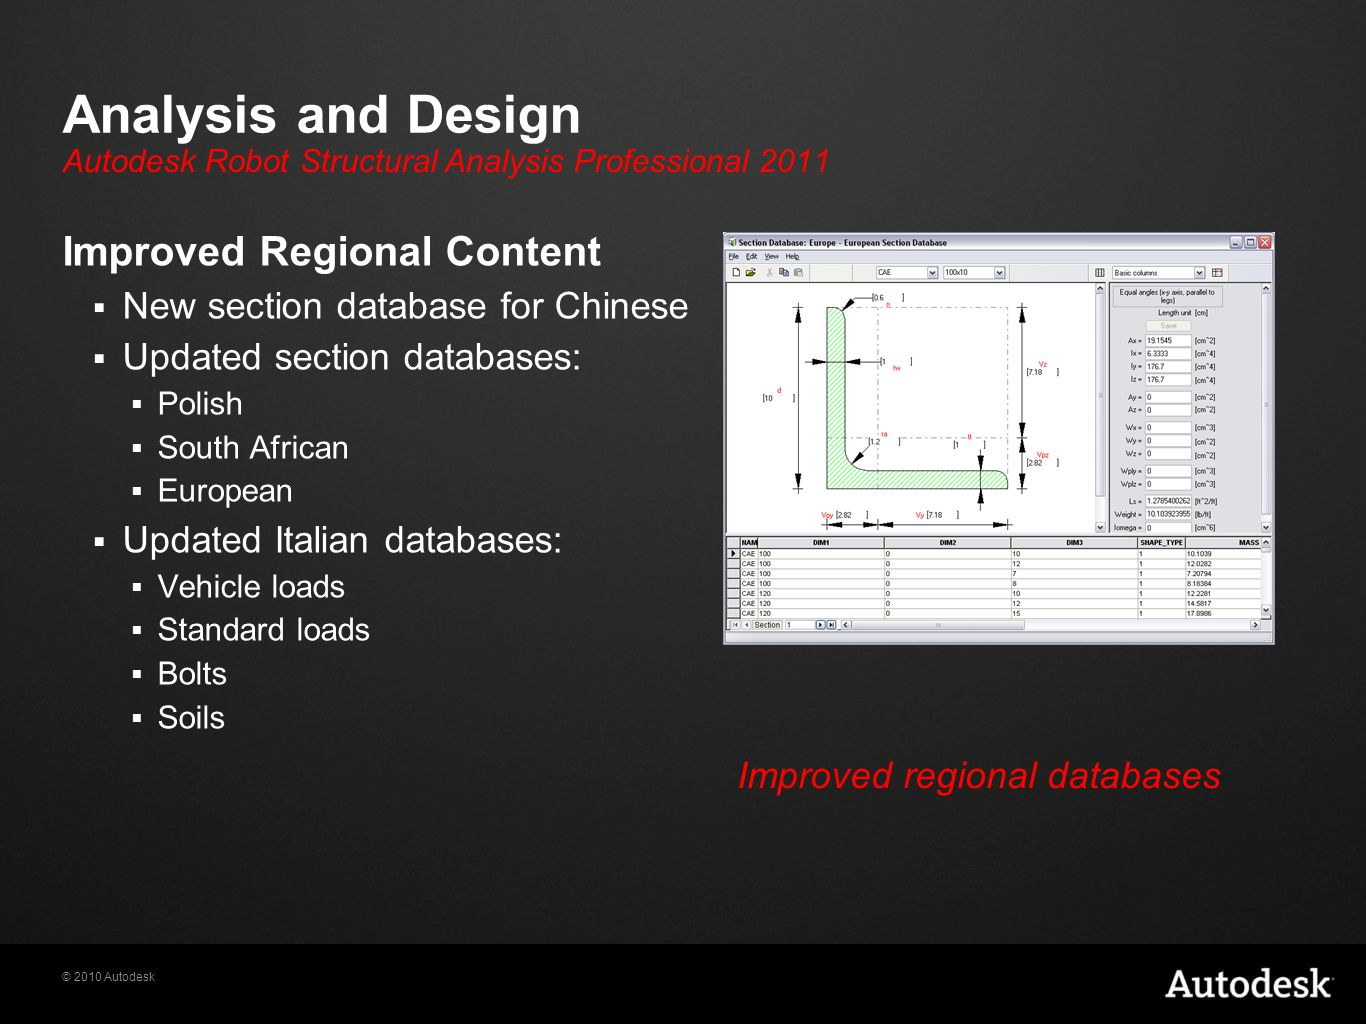 © 2010 Autodesk Analysis and Design Improved Regional Content  New section database for Chinese  Updated section databases:  Polish  South African  European  Updated Italian databases:  Vehicle loads  Standard loads  Bolts  Soils Improved regional databases Autodesk Robot Structural Analysis Professional 2011